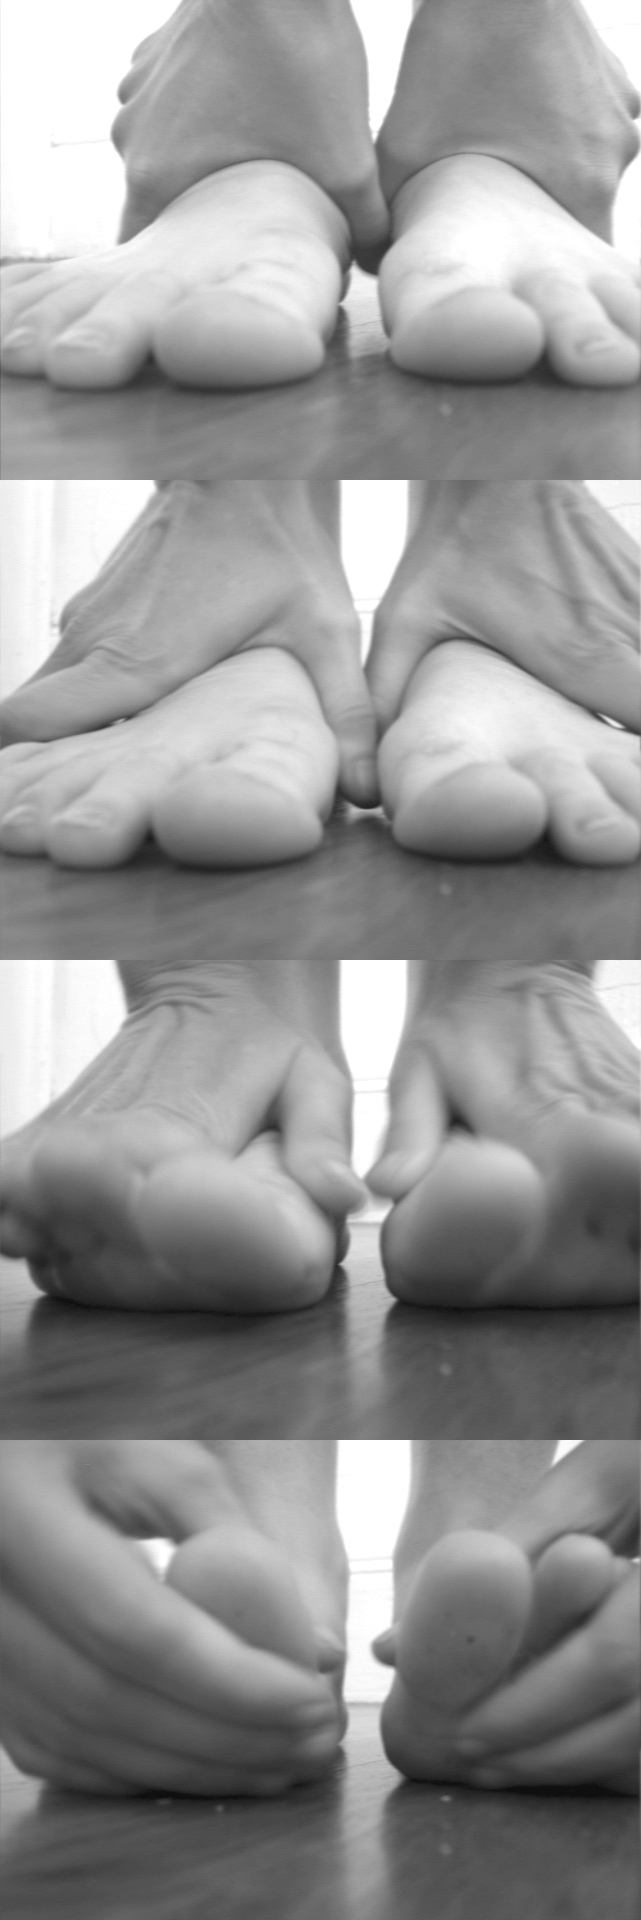 hands and feet x4.jpg